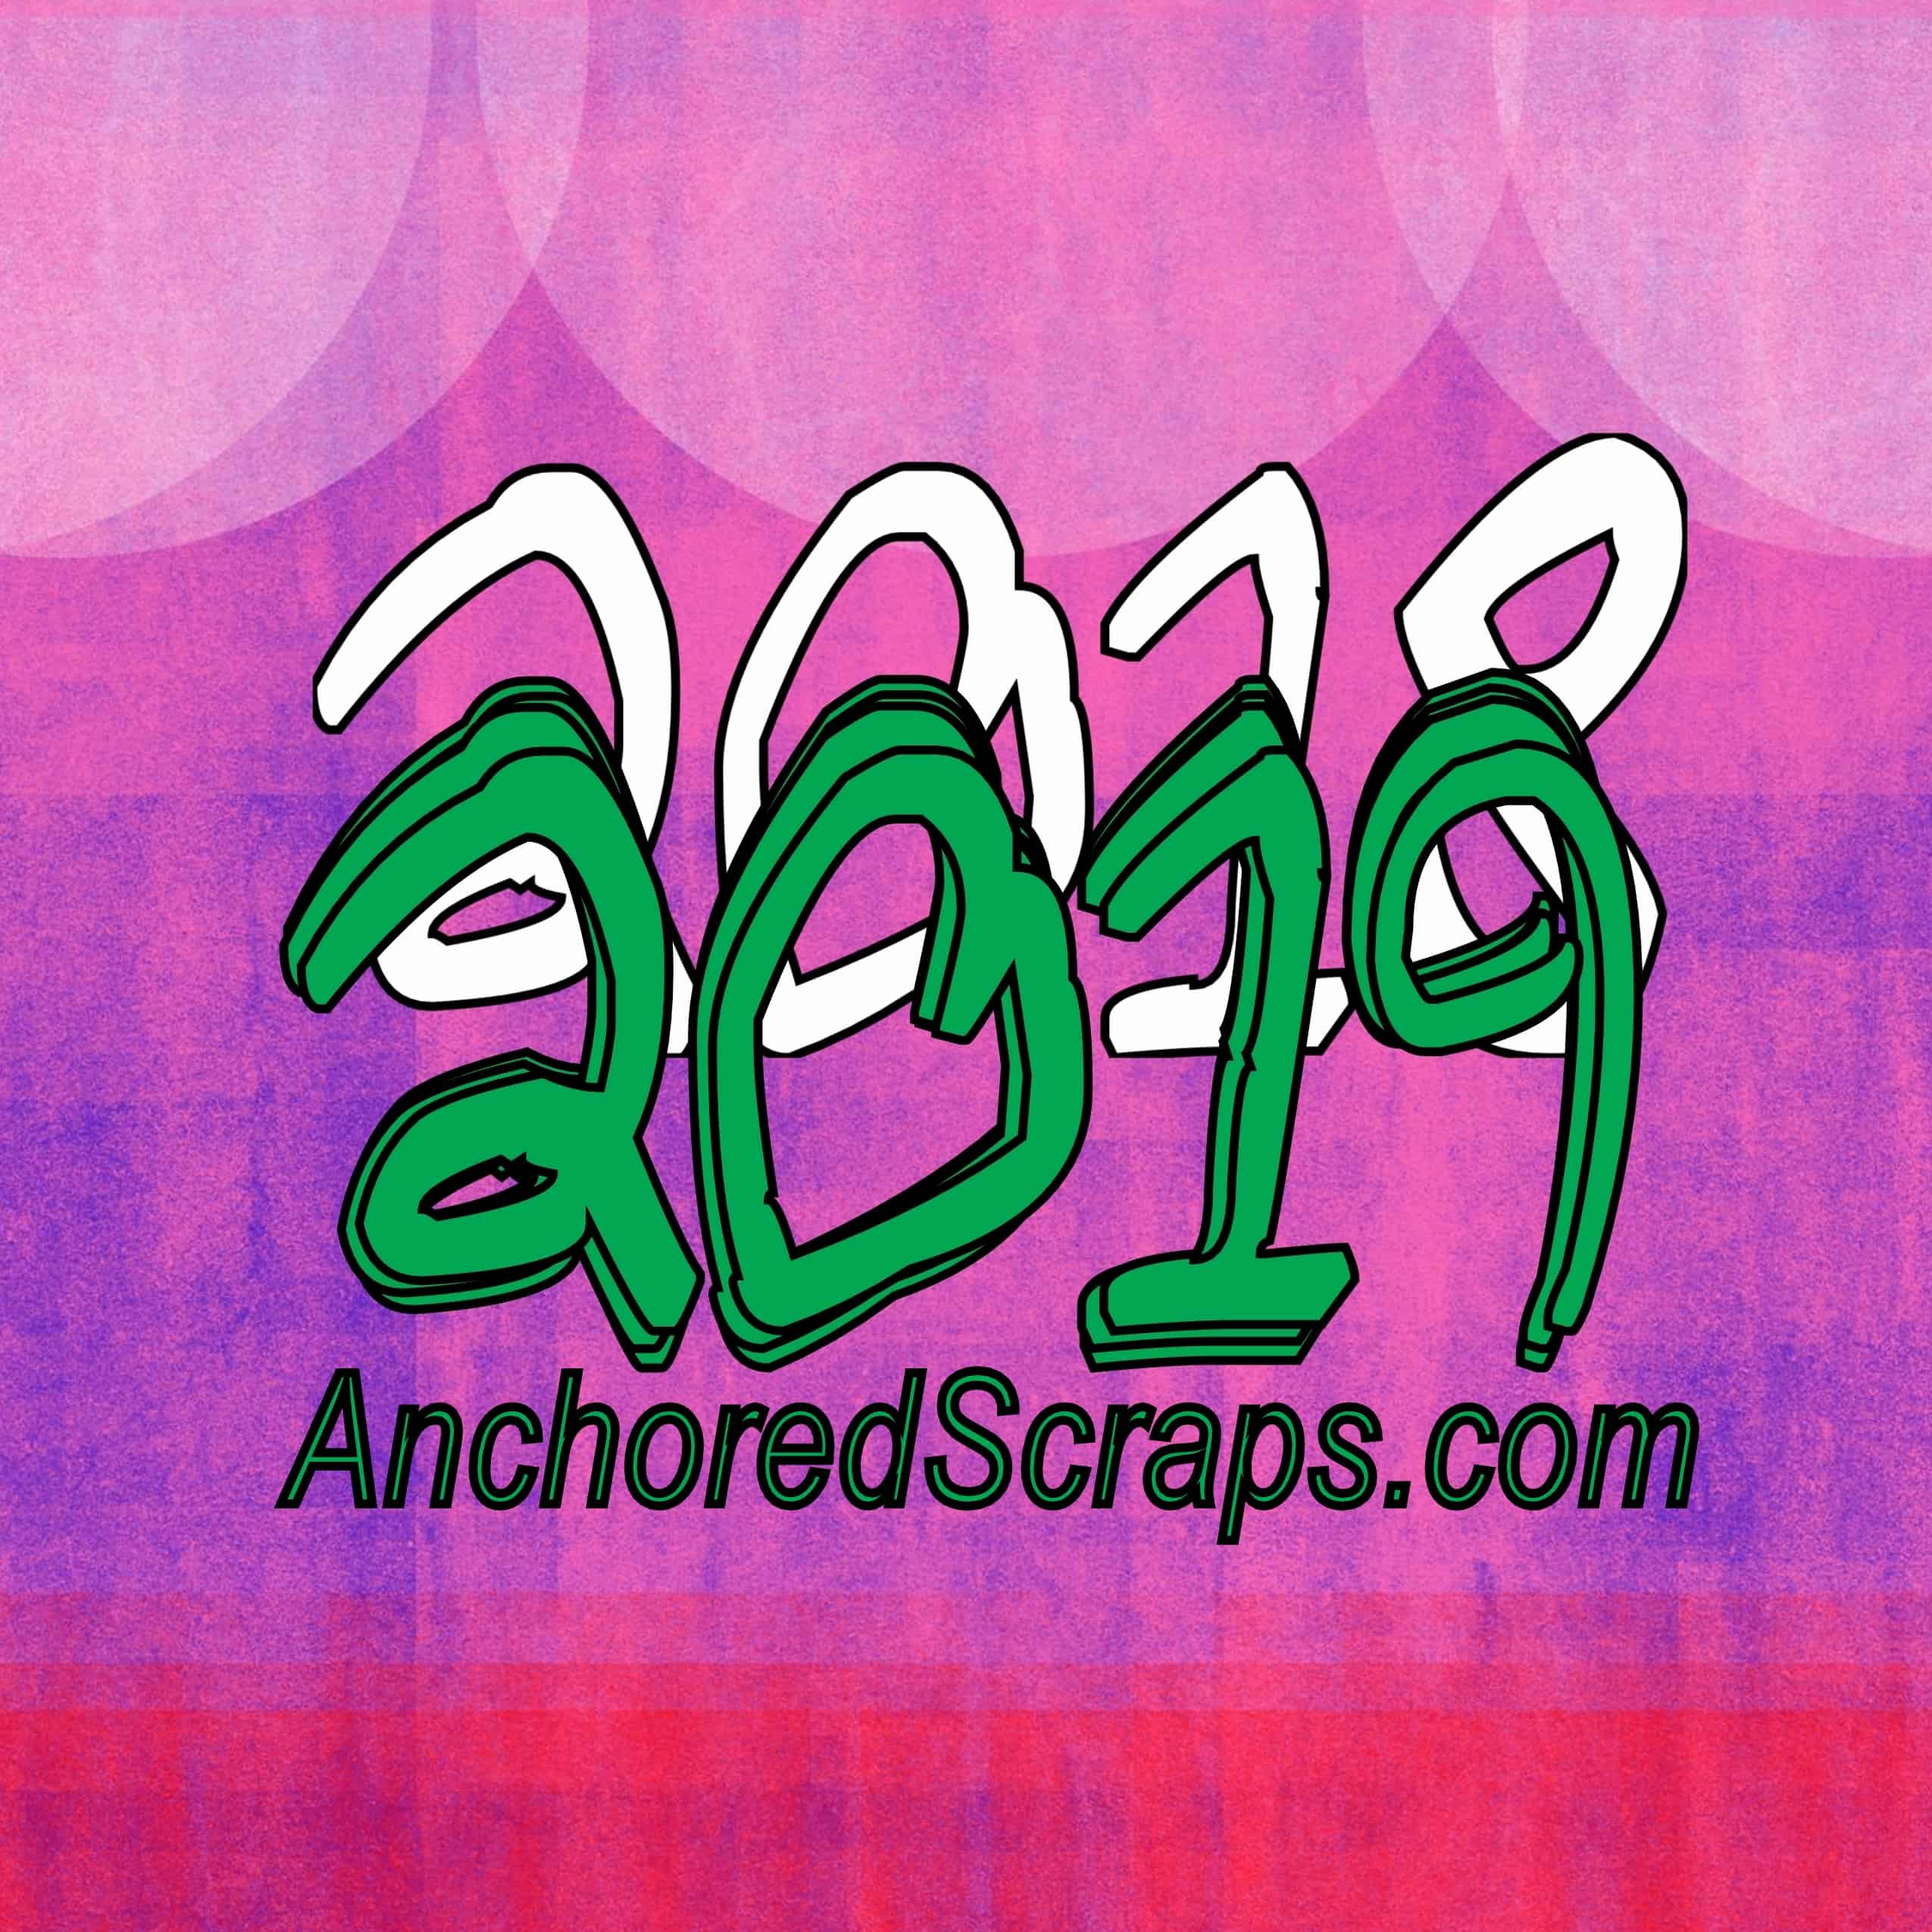 New Year's Eve & AnchoredScraps December 2018 Blog Recap